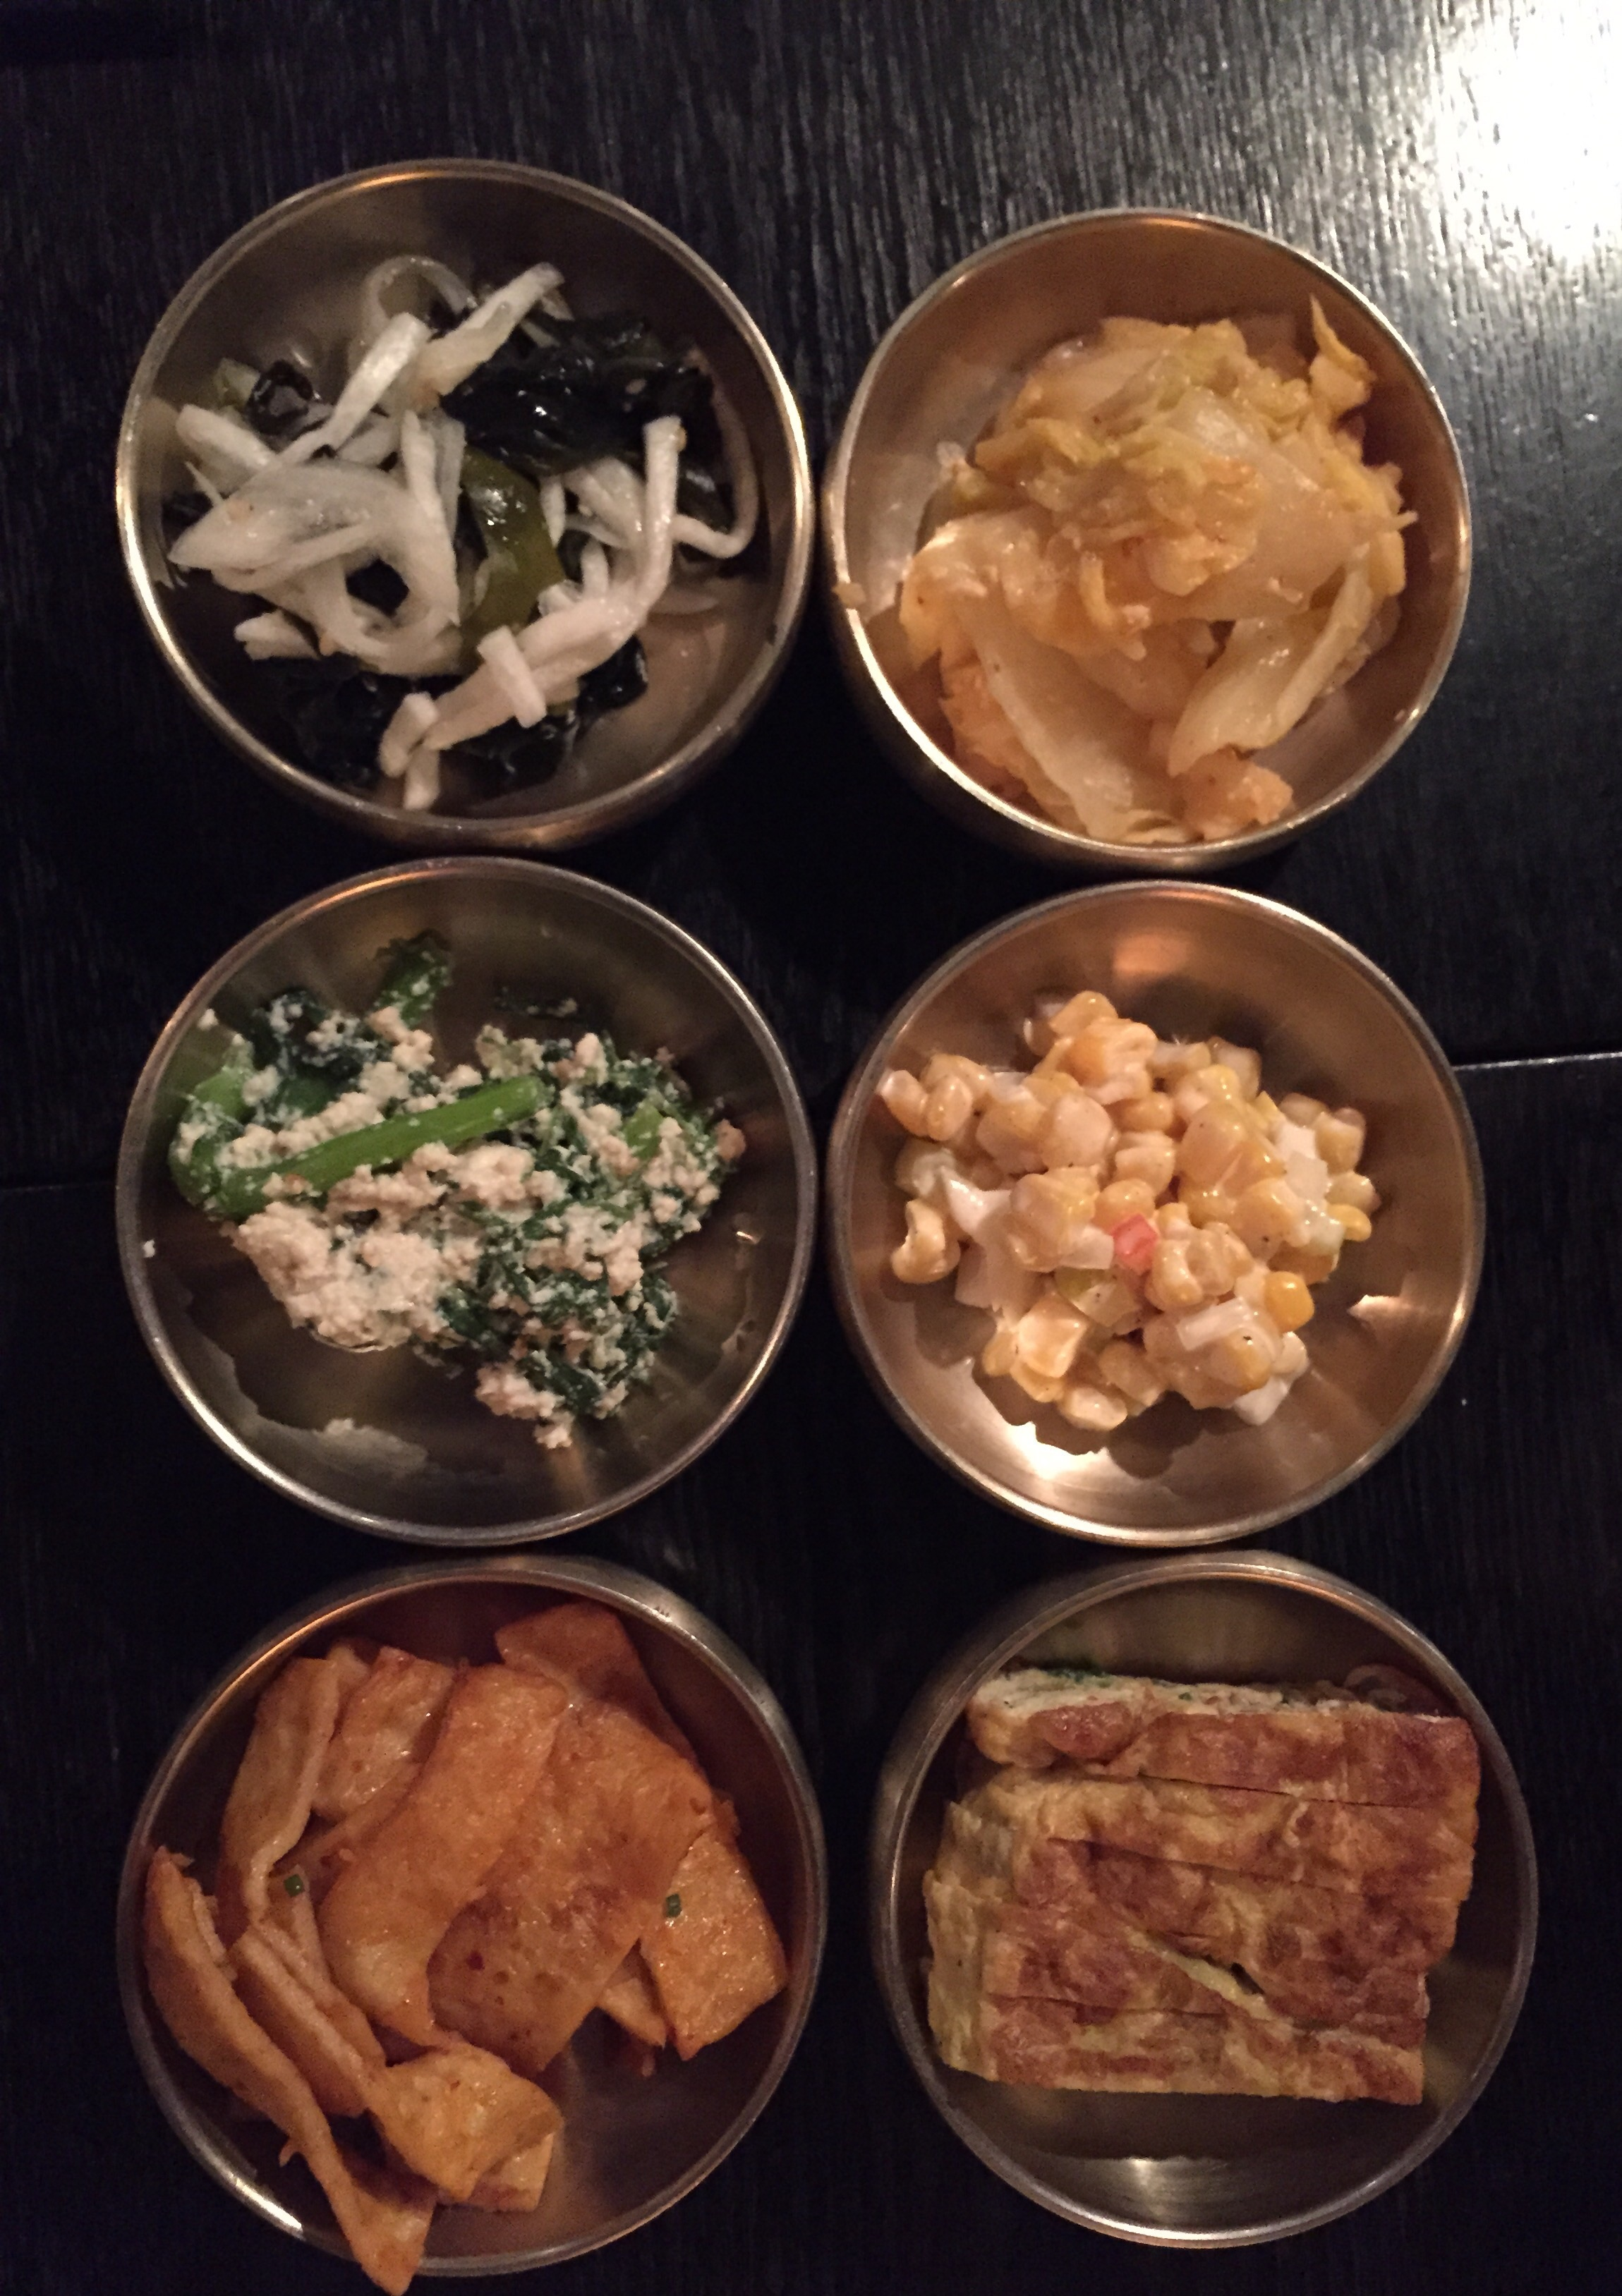 The 반찬 (banchan).  Free refillable side dishes that come with all meals. Nice selection of seaweed in vinegar, whie kimchi, crown daisy vegetable in soft tofu, corn in mayo, fish cakes andegg omelette.